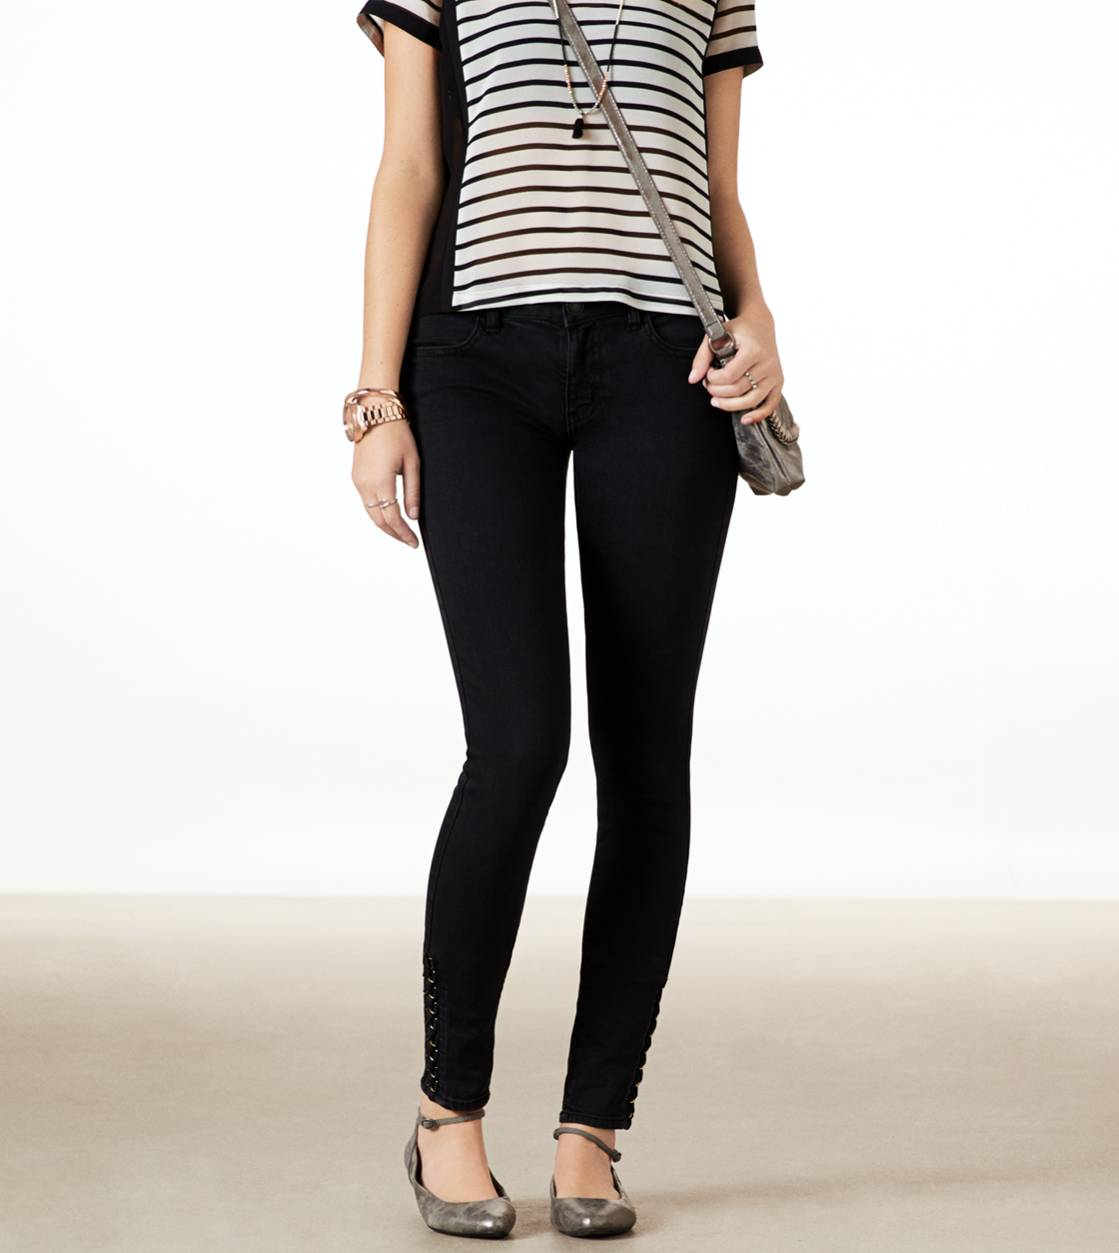 Black Lace Up Jegging Ankle